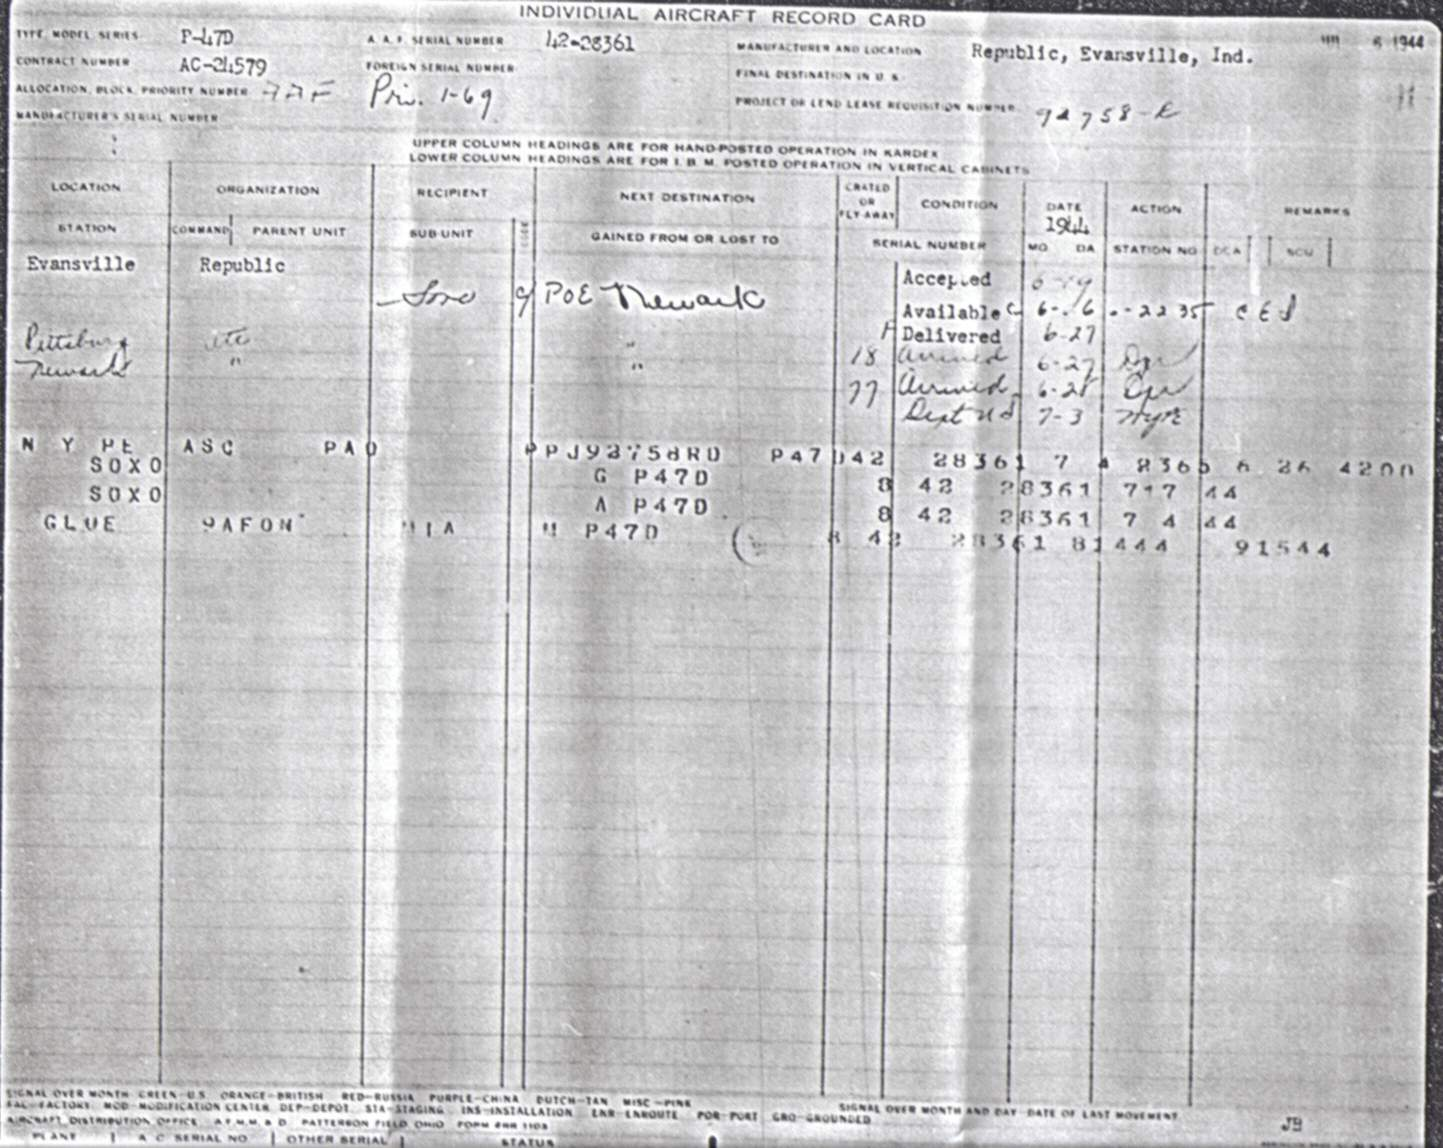 Individual Aircraft Record Card